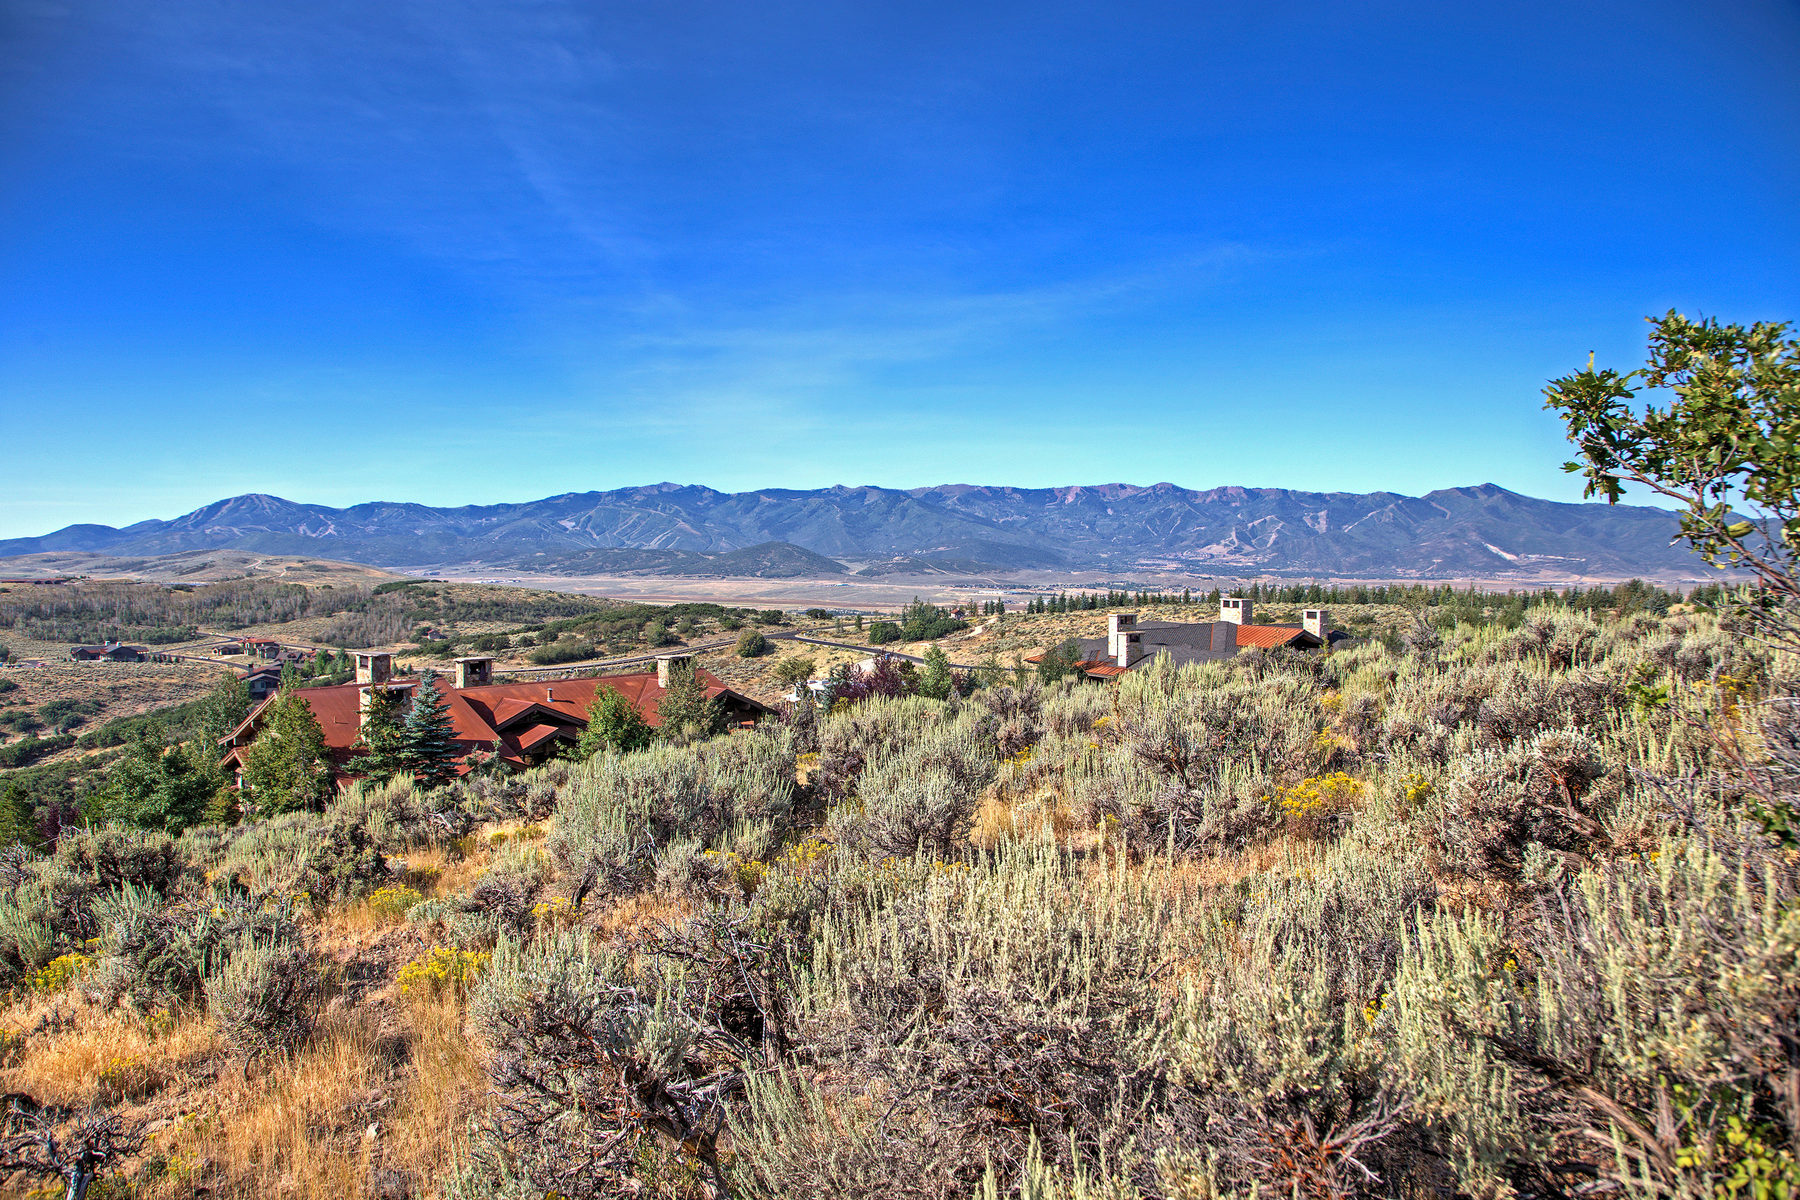 Terreno por un Venta en Deer Crossing Home Site - 180 Degree Vista of the Wasatch Front and Kamas 8172 Promontory Ranch Rd Lot 77 Park City, Utah, 84098 Estados Unidos